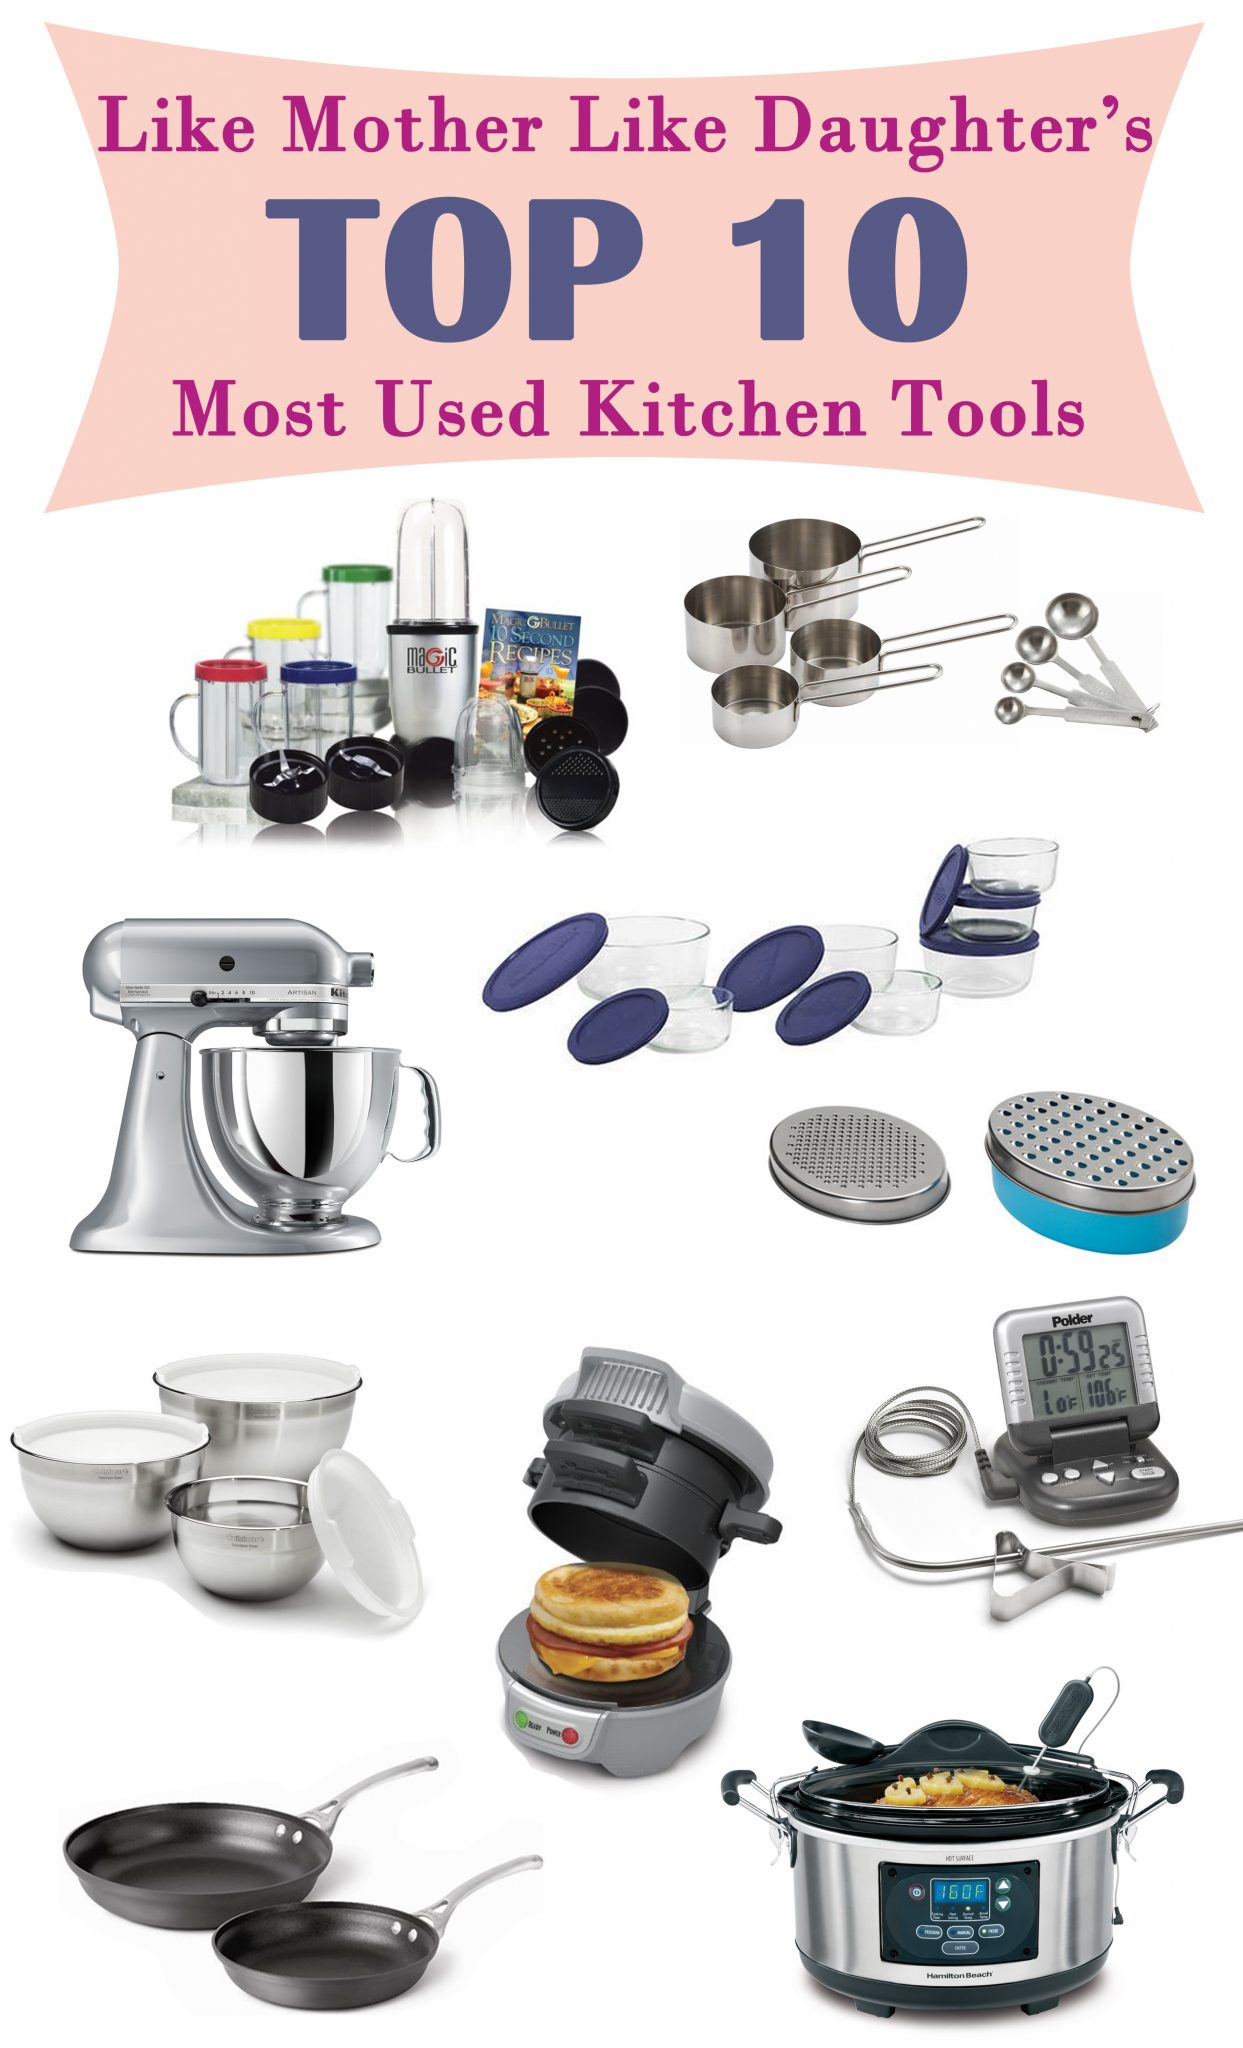 10 Kitchen And Home Decor Items Every 20 Something Needs: Top 10 Kitchen Tools Used In LMLD Kitchens